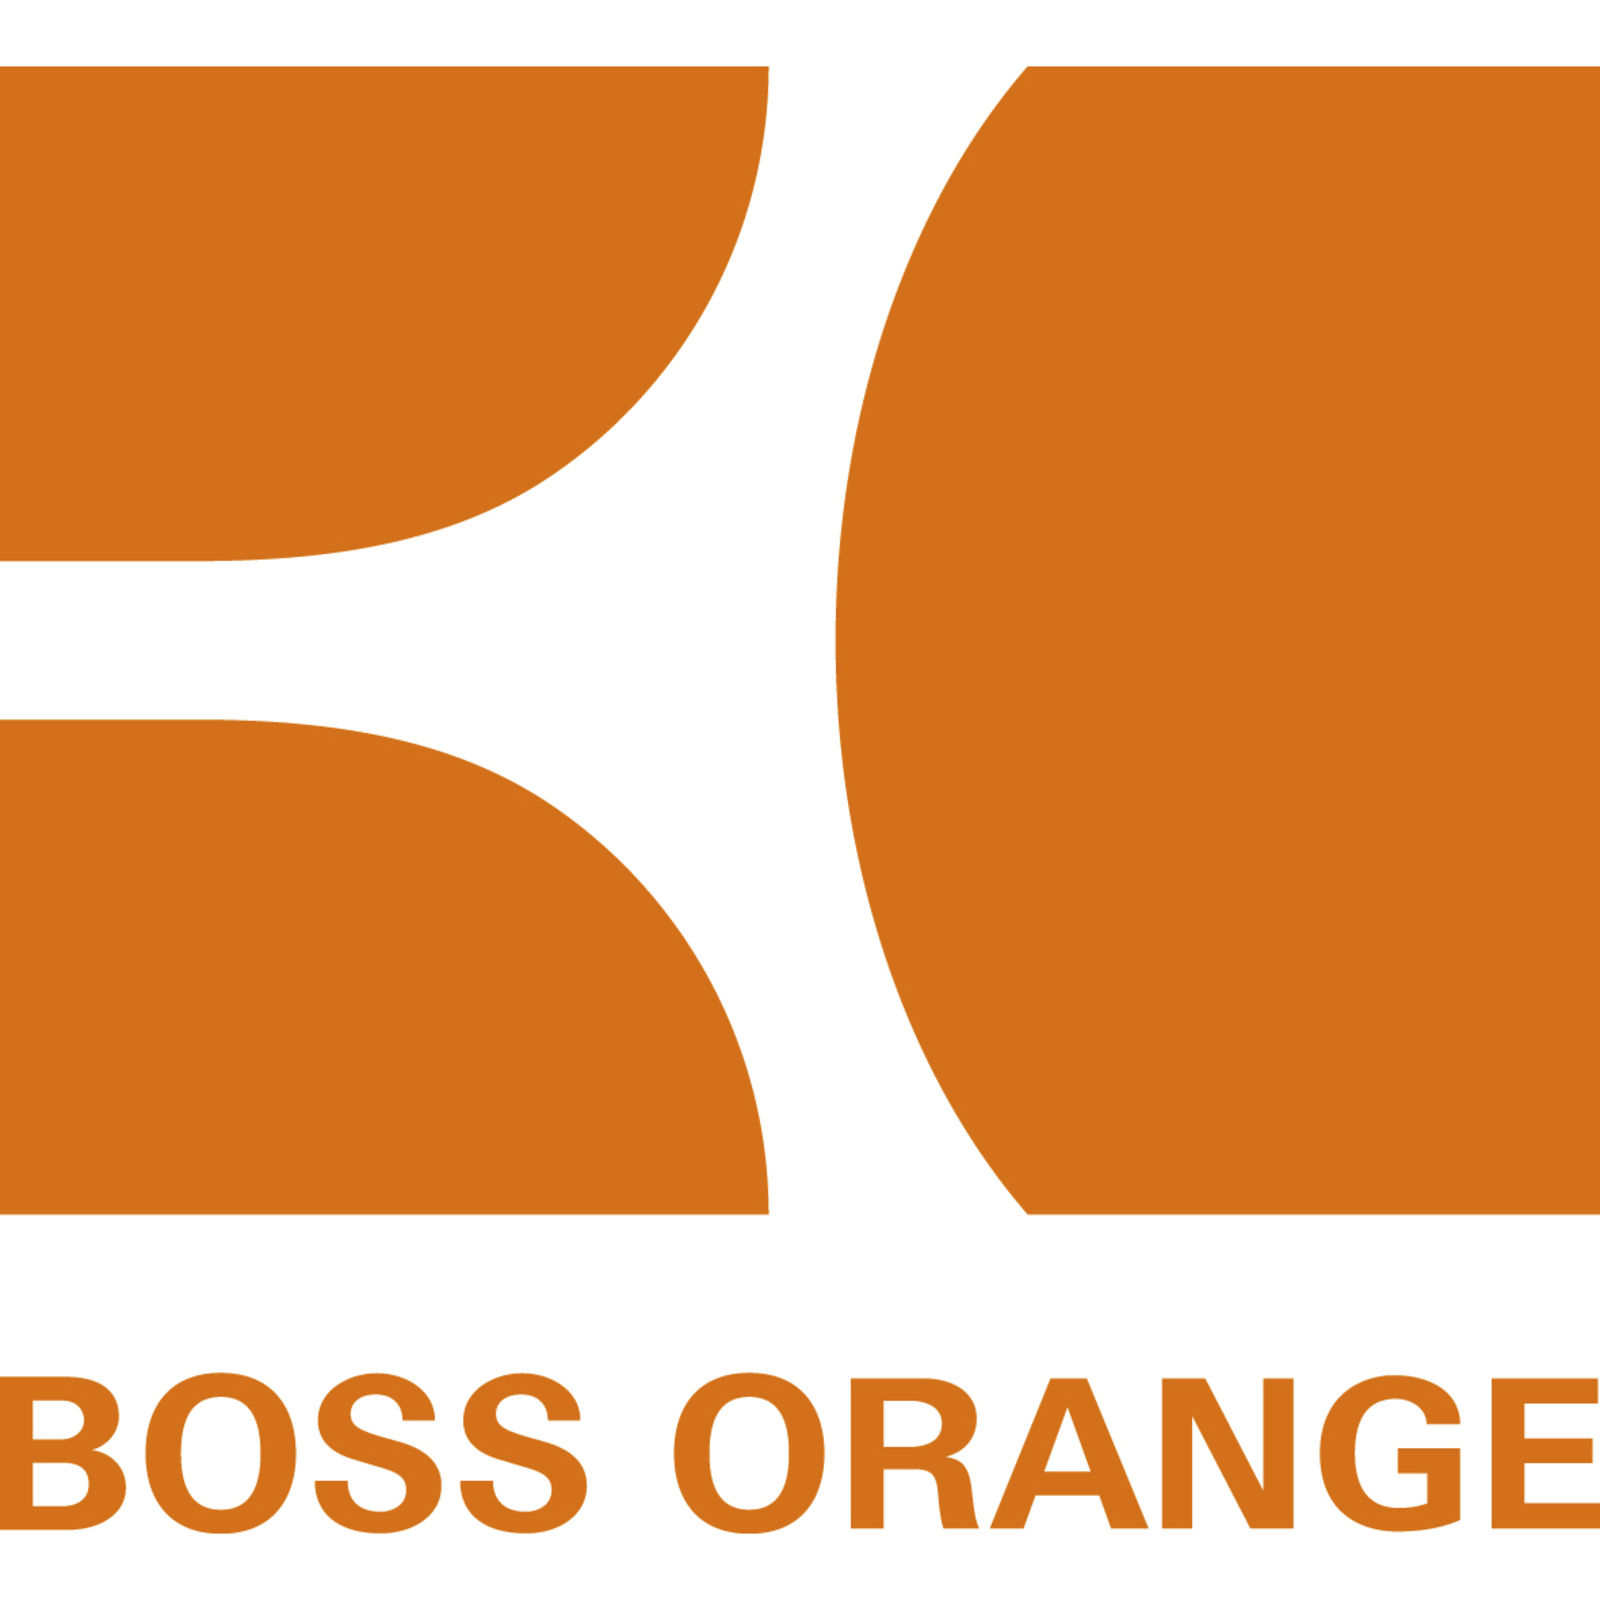 BOSS ORANGE Eyewear (Image 1)